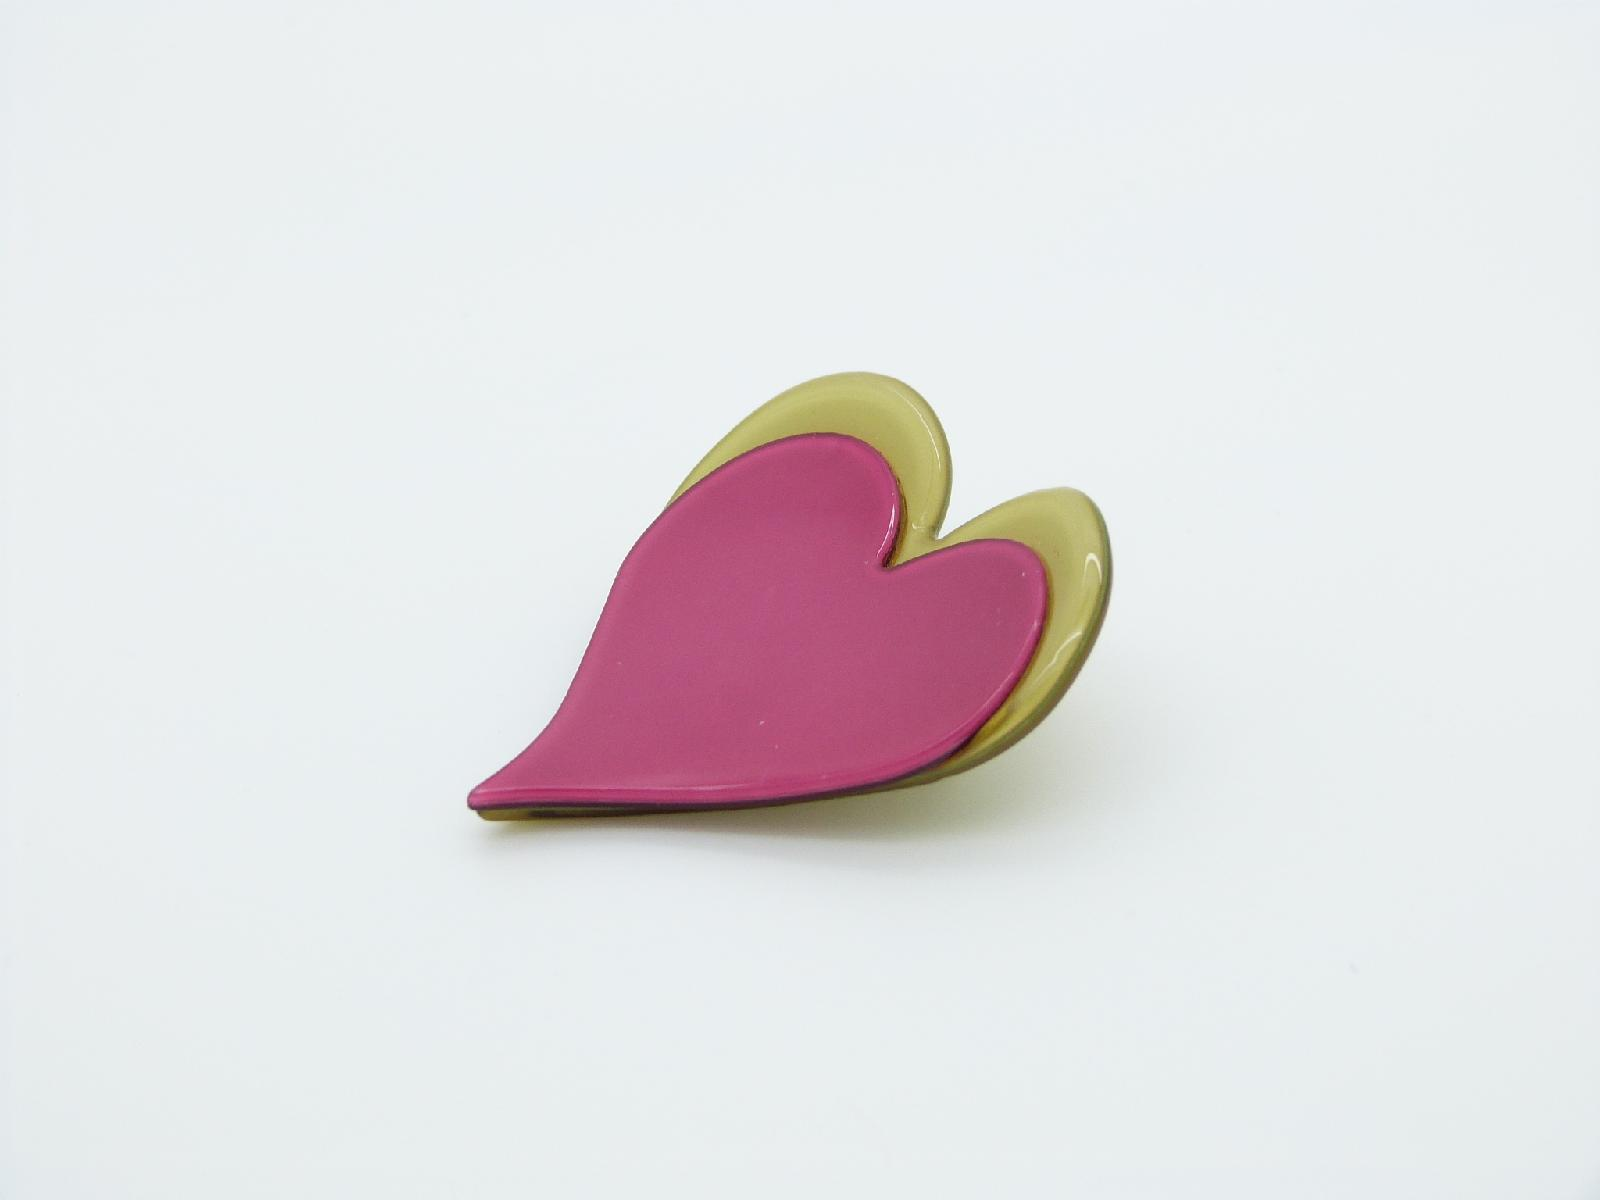 £8.00 - Quirky and Fun Pink and Green Double Heart Style Acrylic Brooch Pretty